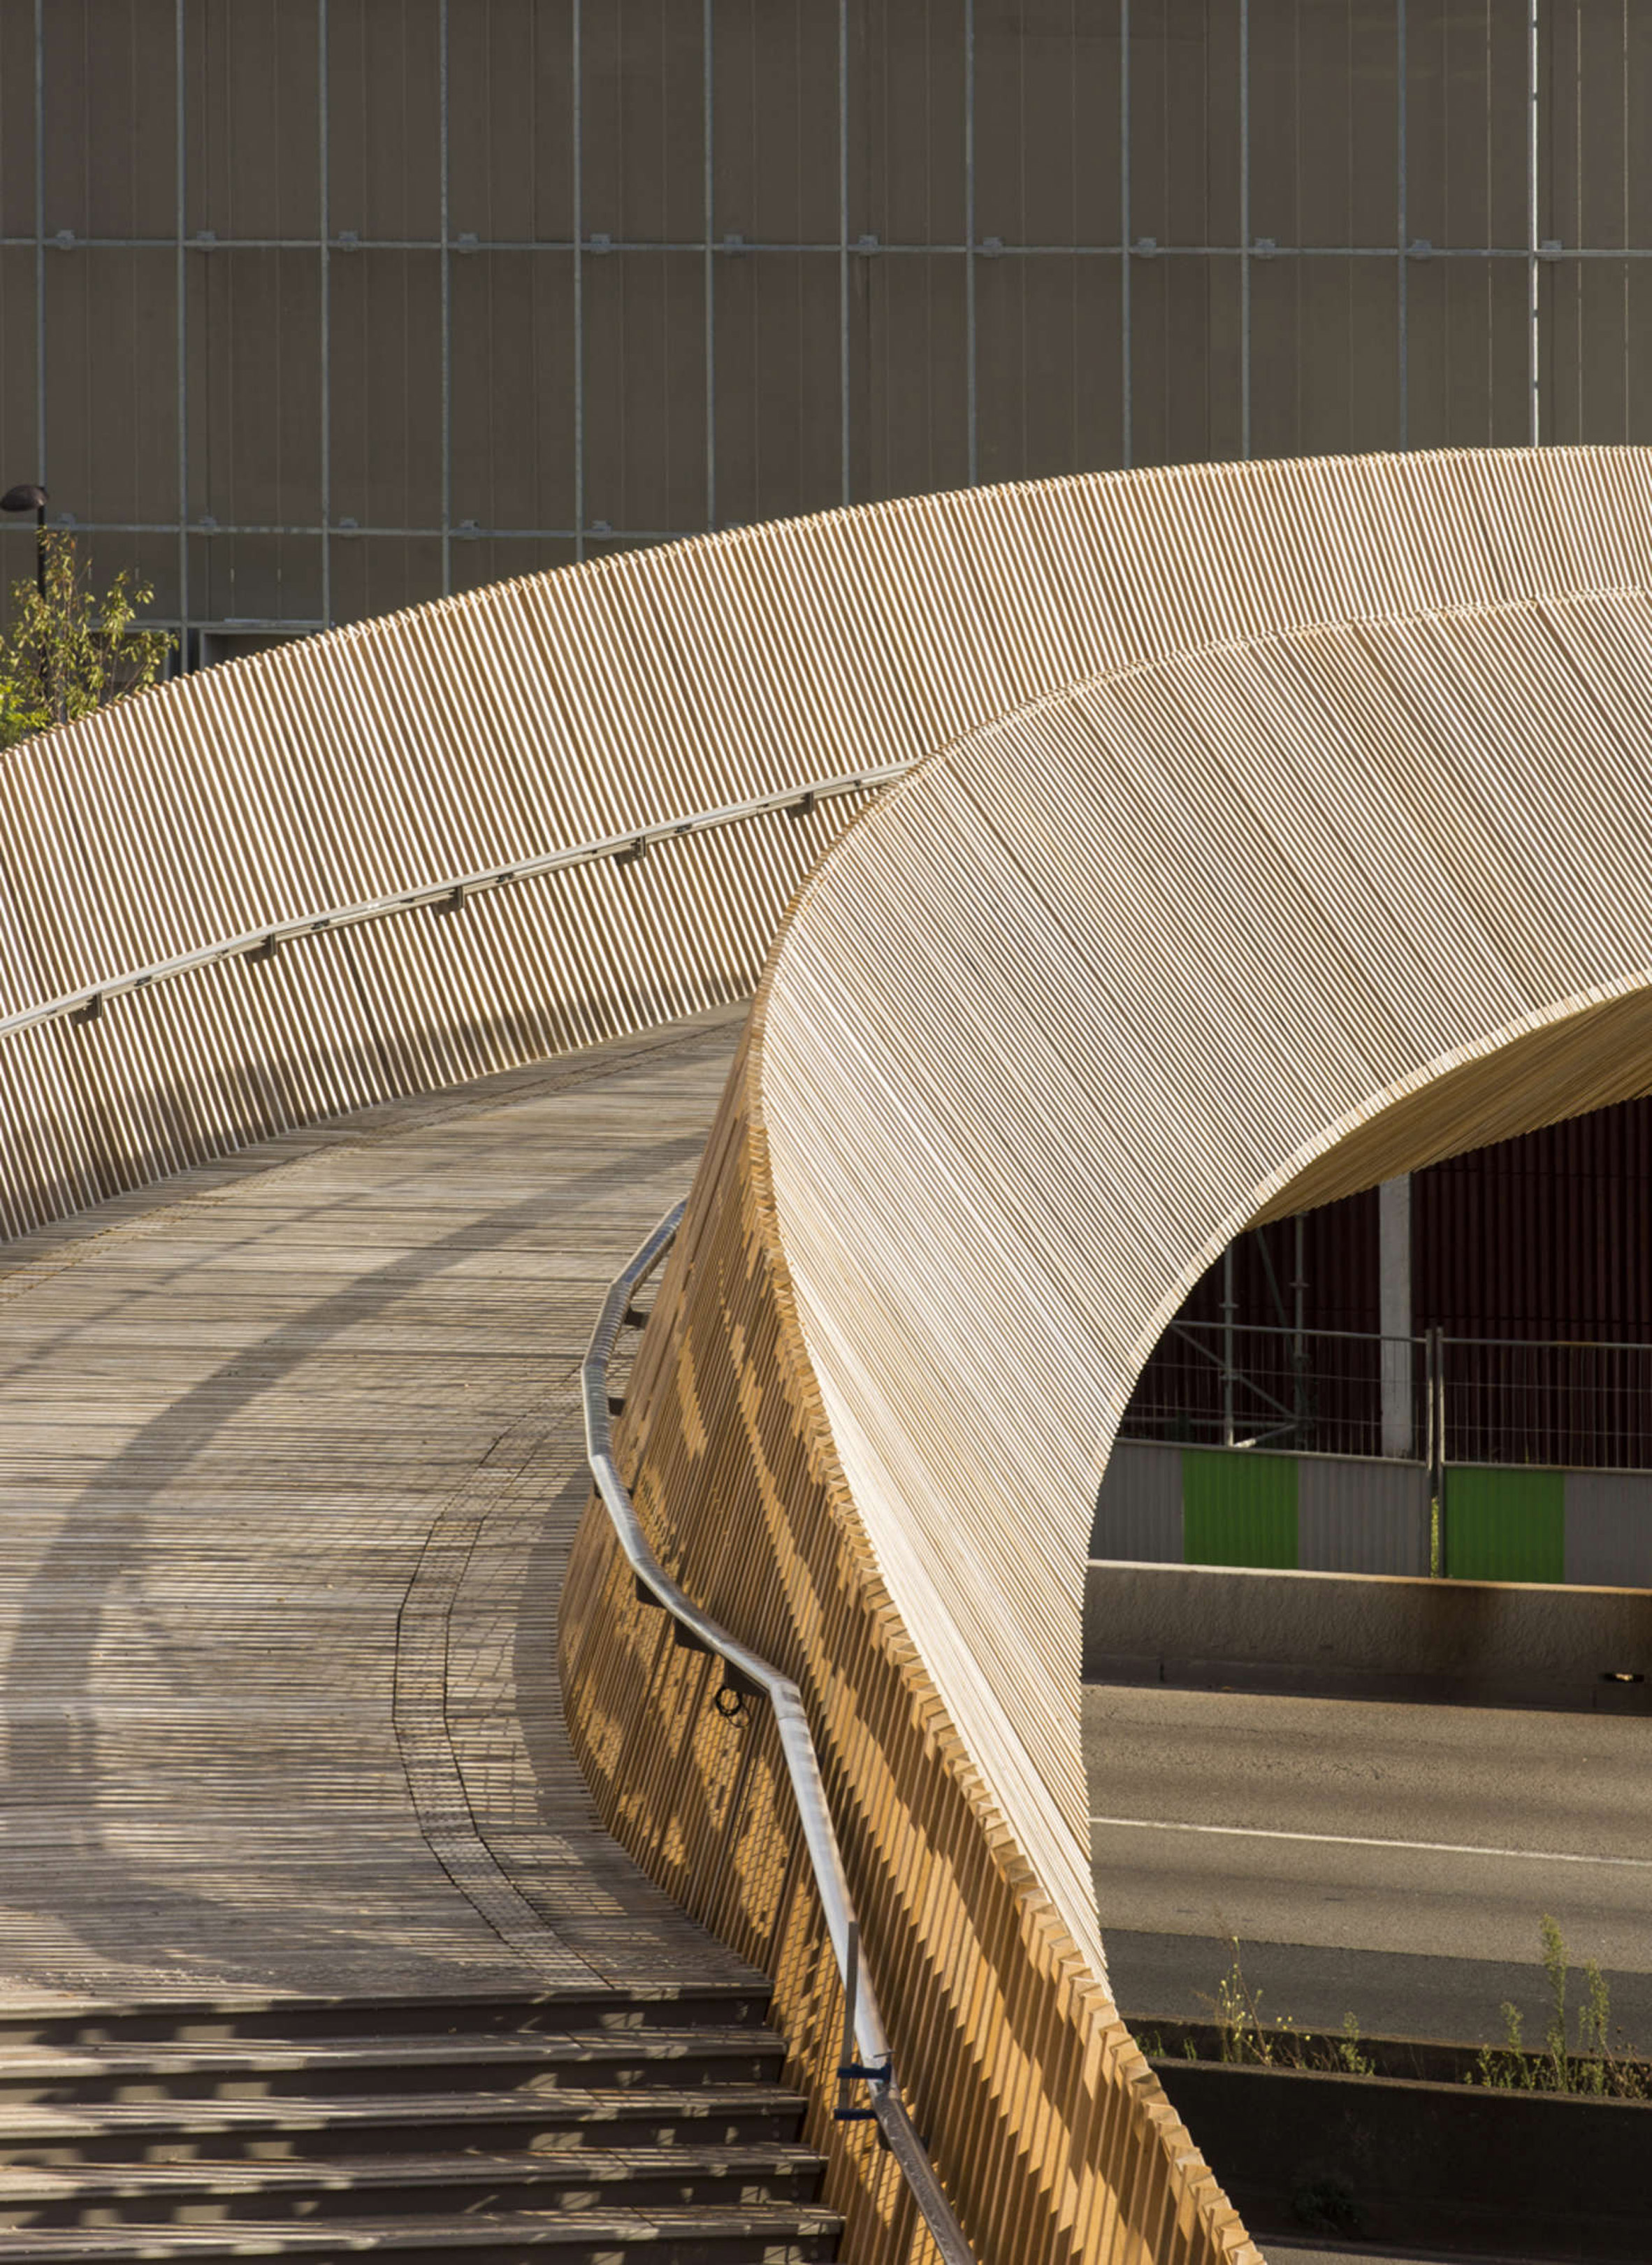 architizer-footbridge-over-the-boulevard-peripherique-dvvd-infrastructure_dezeen_2364_col_5